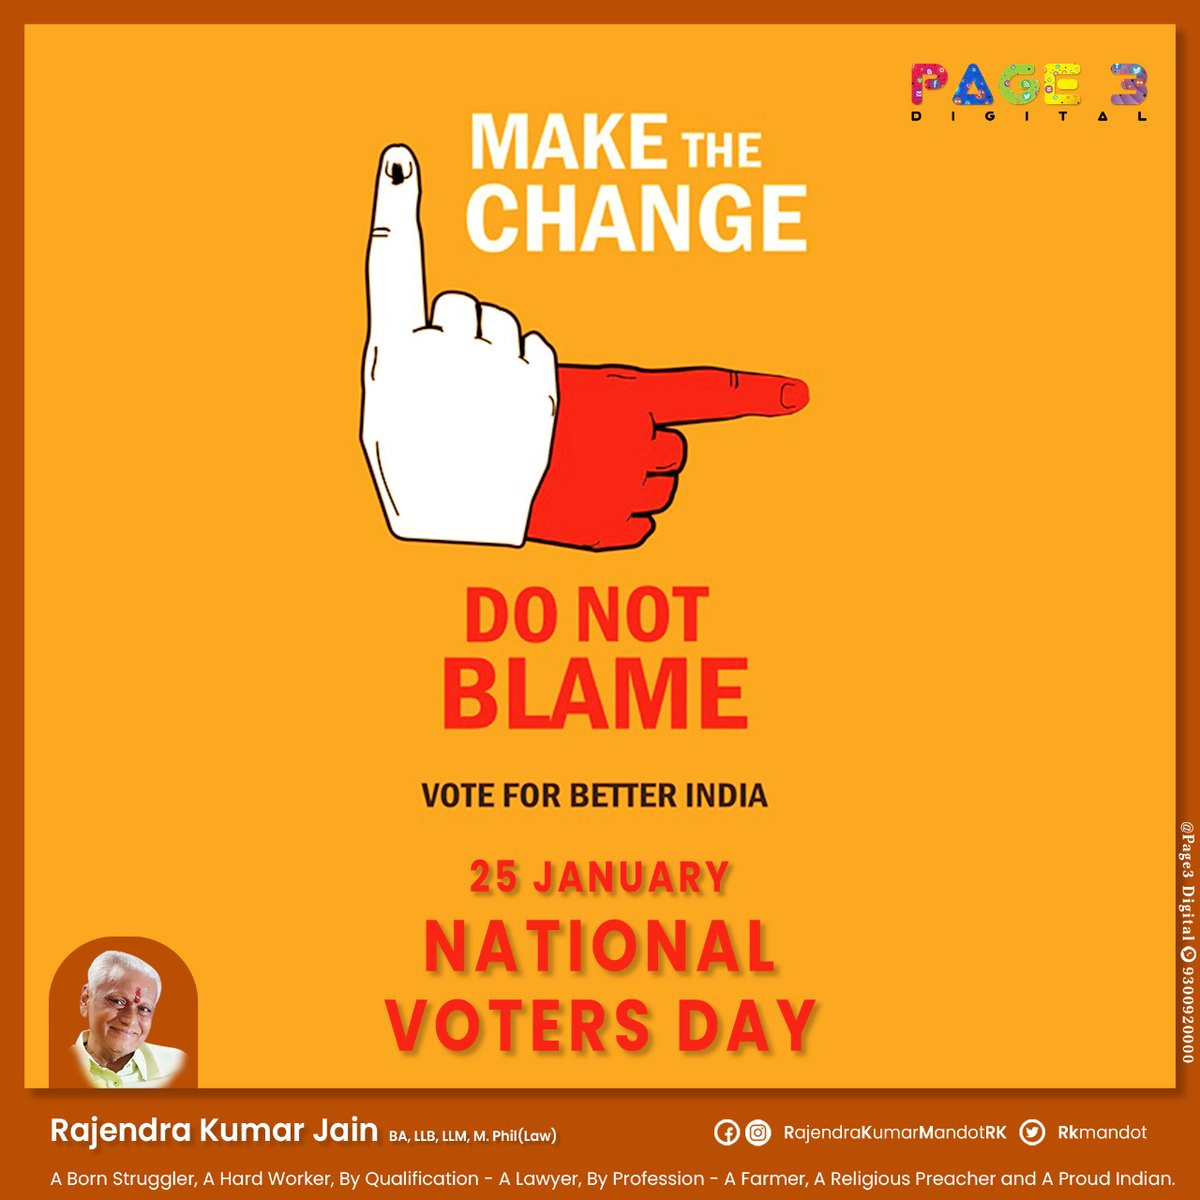 Make the Change Do Not Blame..  VOTE FOR BETTER INDIA   NATIONAL VOTERS DAY   #Nationalvotersday #voting #politics #votingmatters #democracy #votingrights #electionday #ivoted #votevotevote #votingday #votersday2021 #Nationalvotersday2021 #राष्ट्रीयमतदातादिवस #मतदातादिवस #मतदान